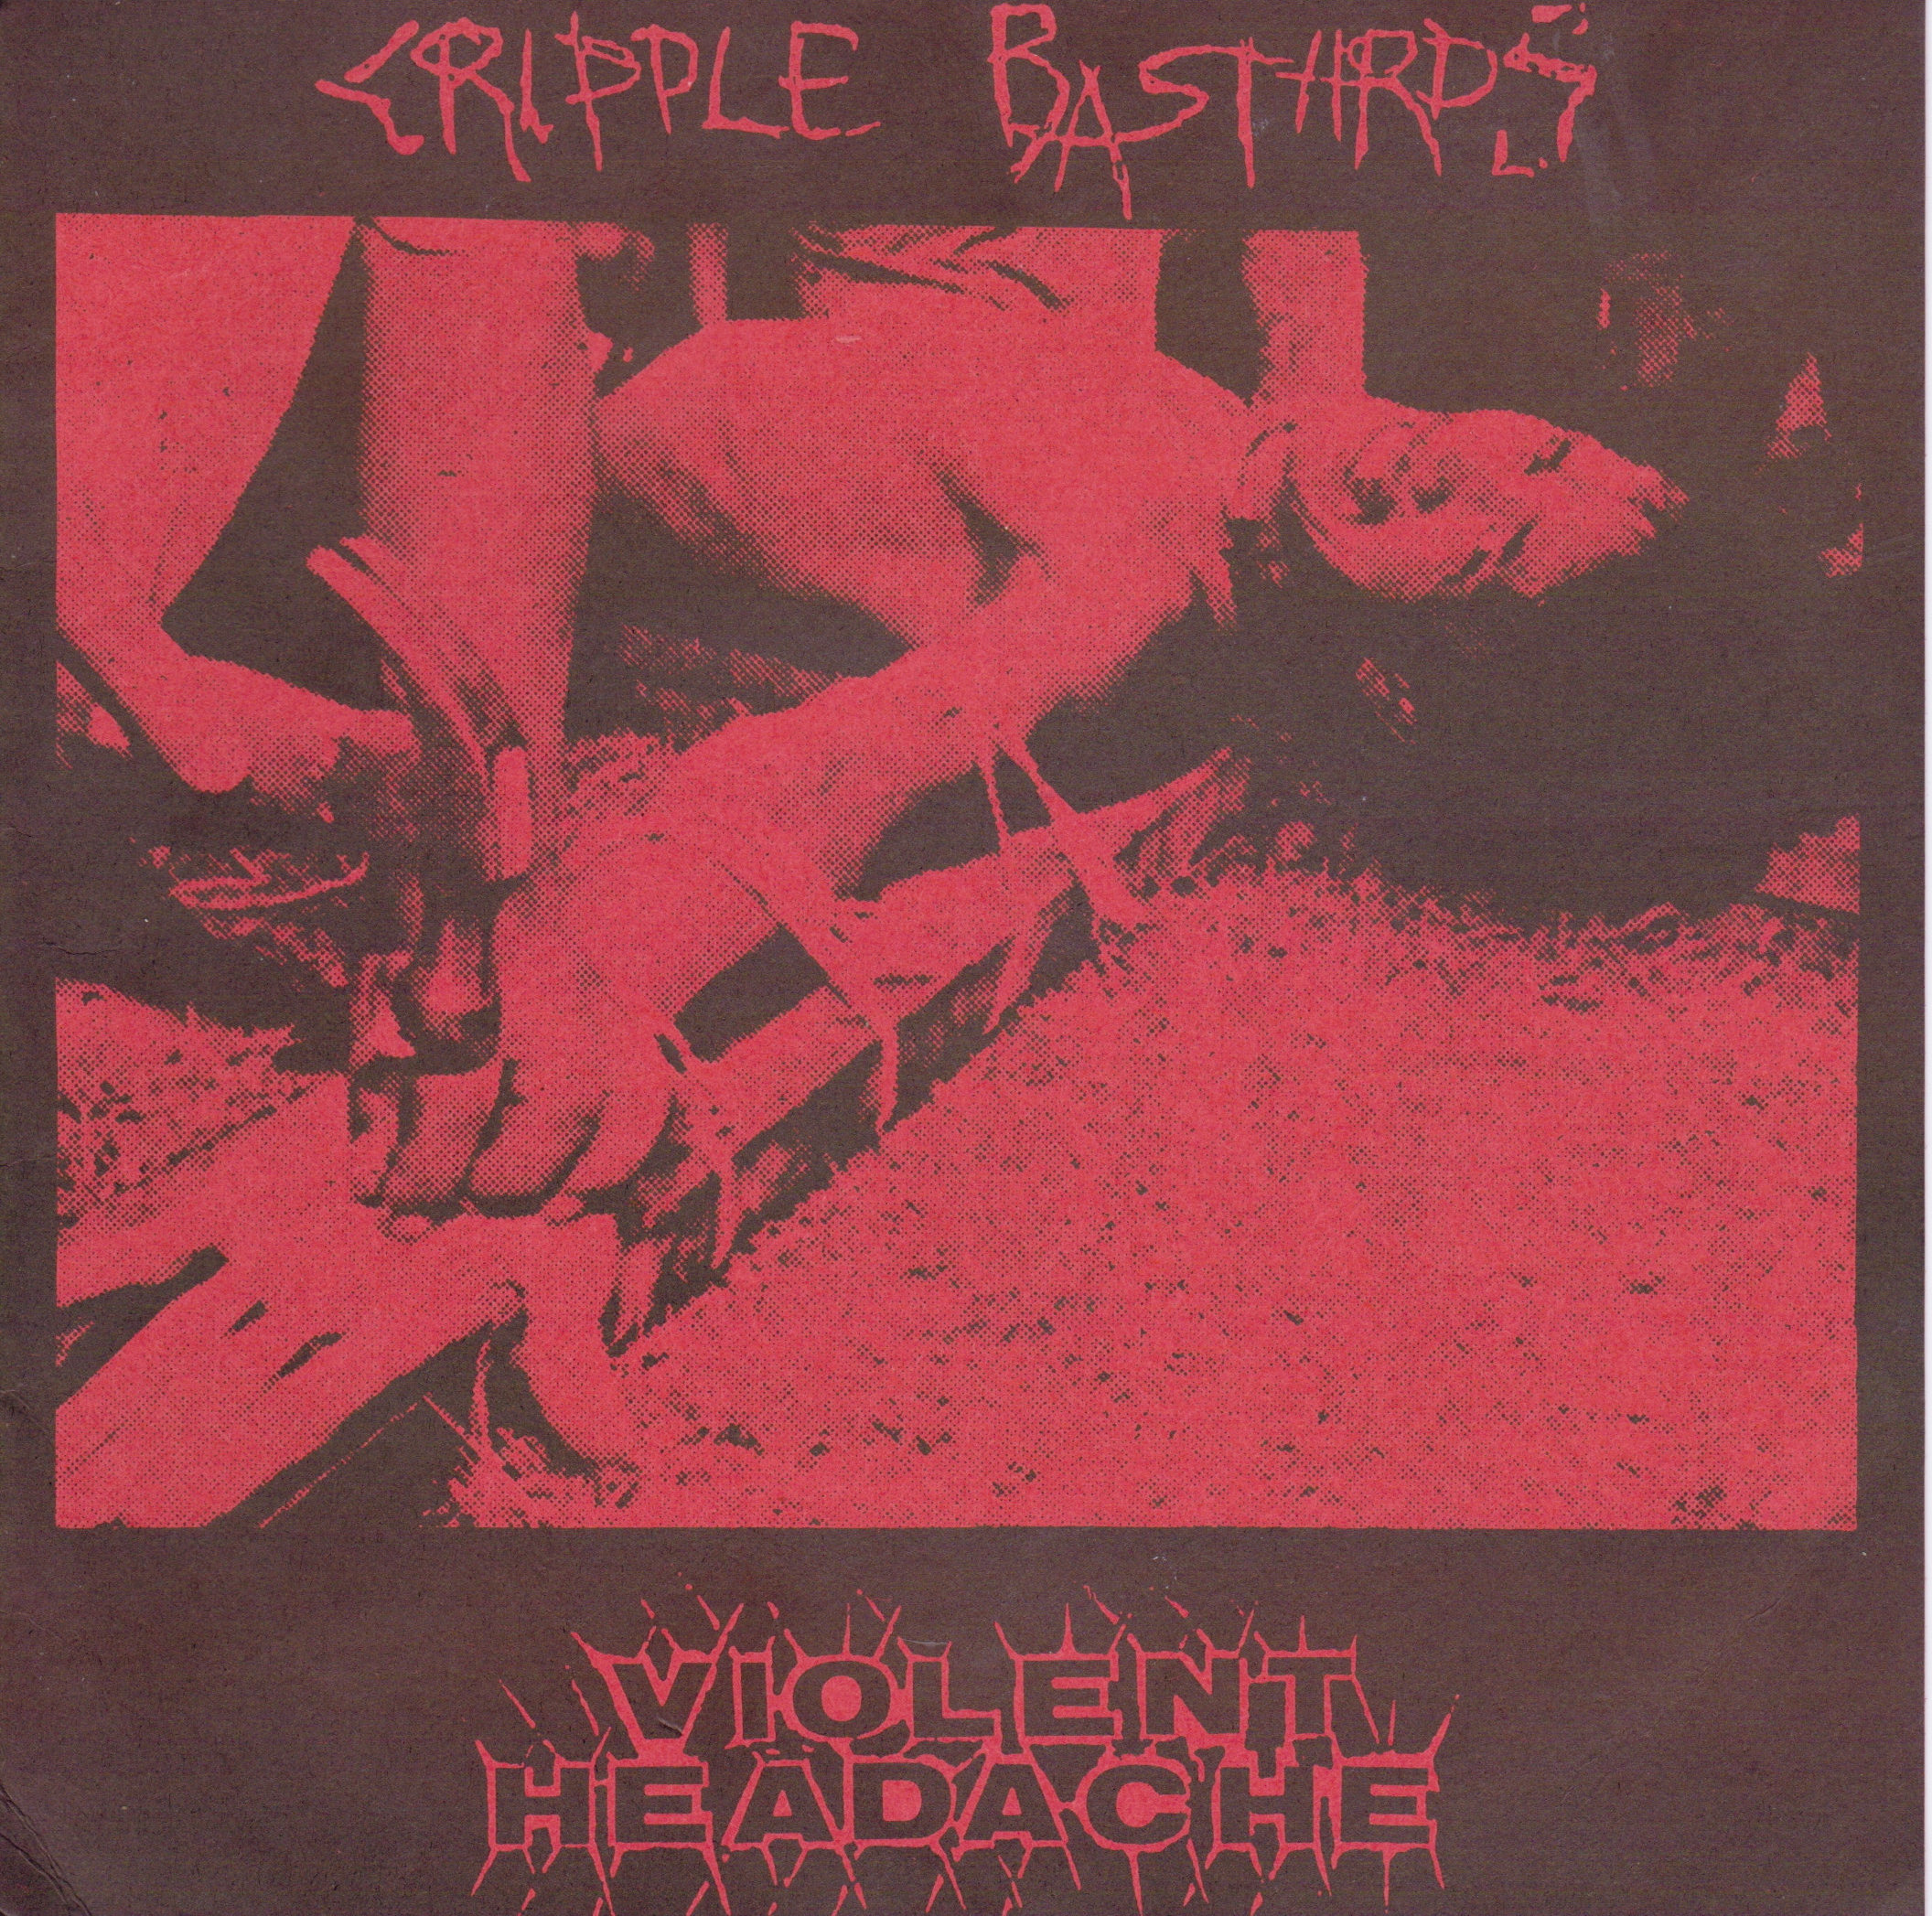 Cripple Bastards/Violent Headache